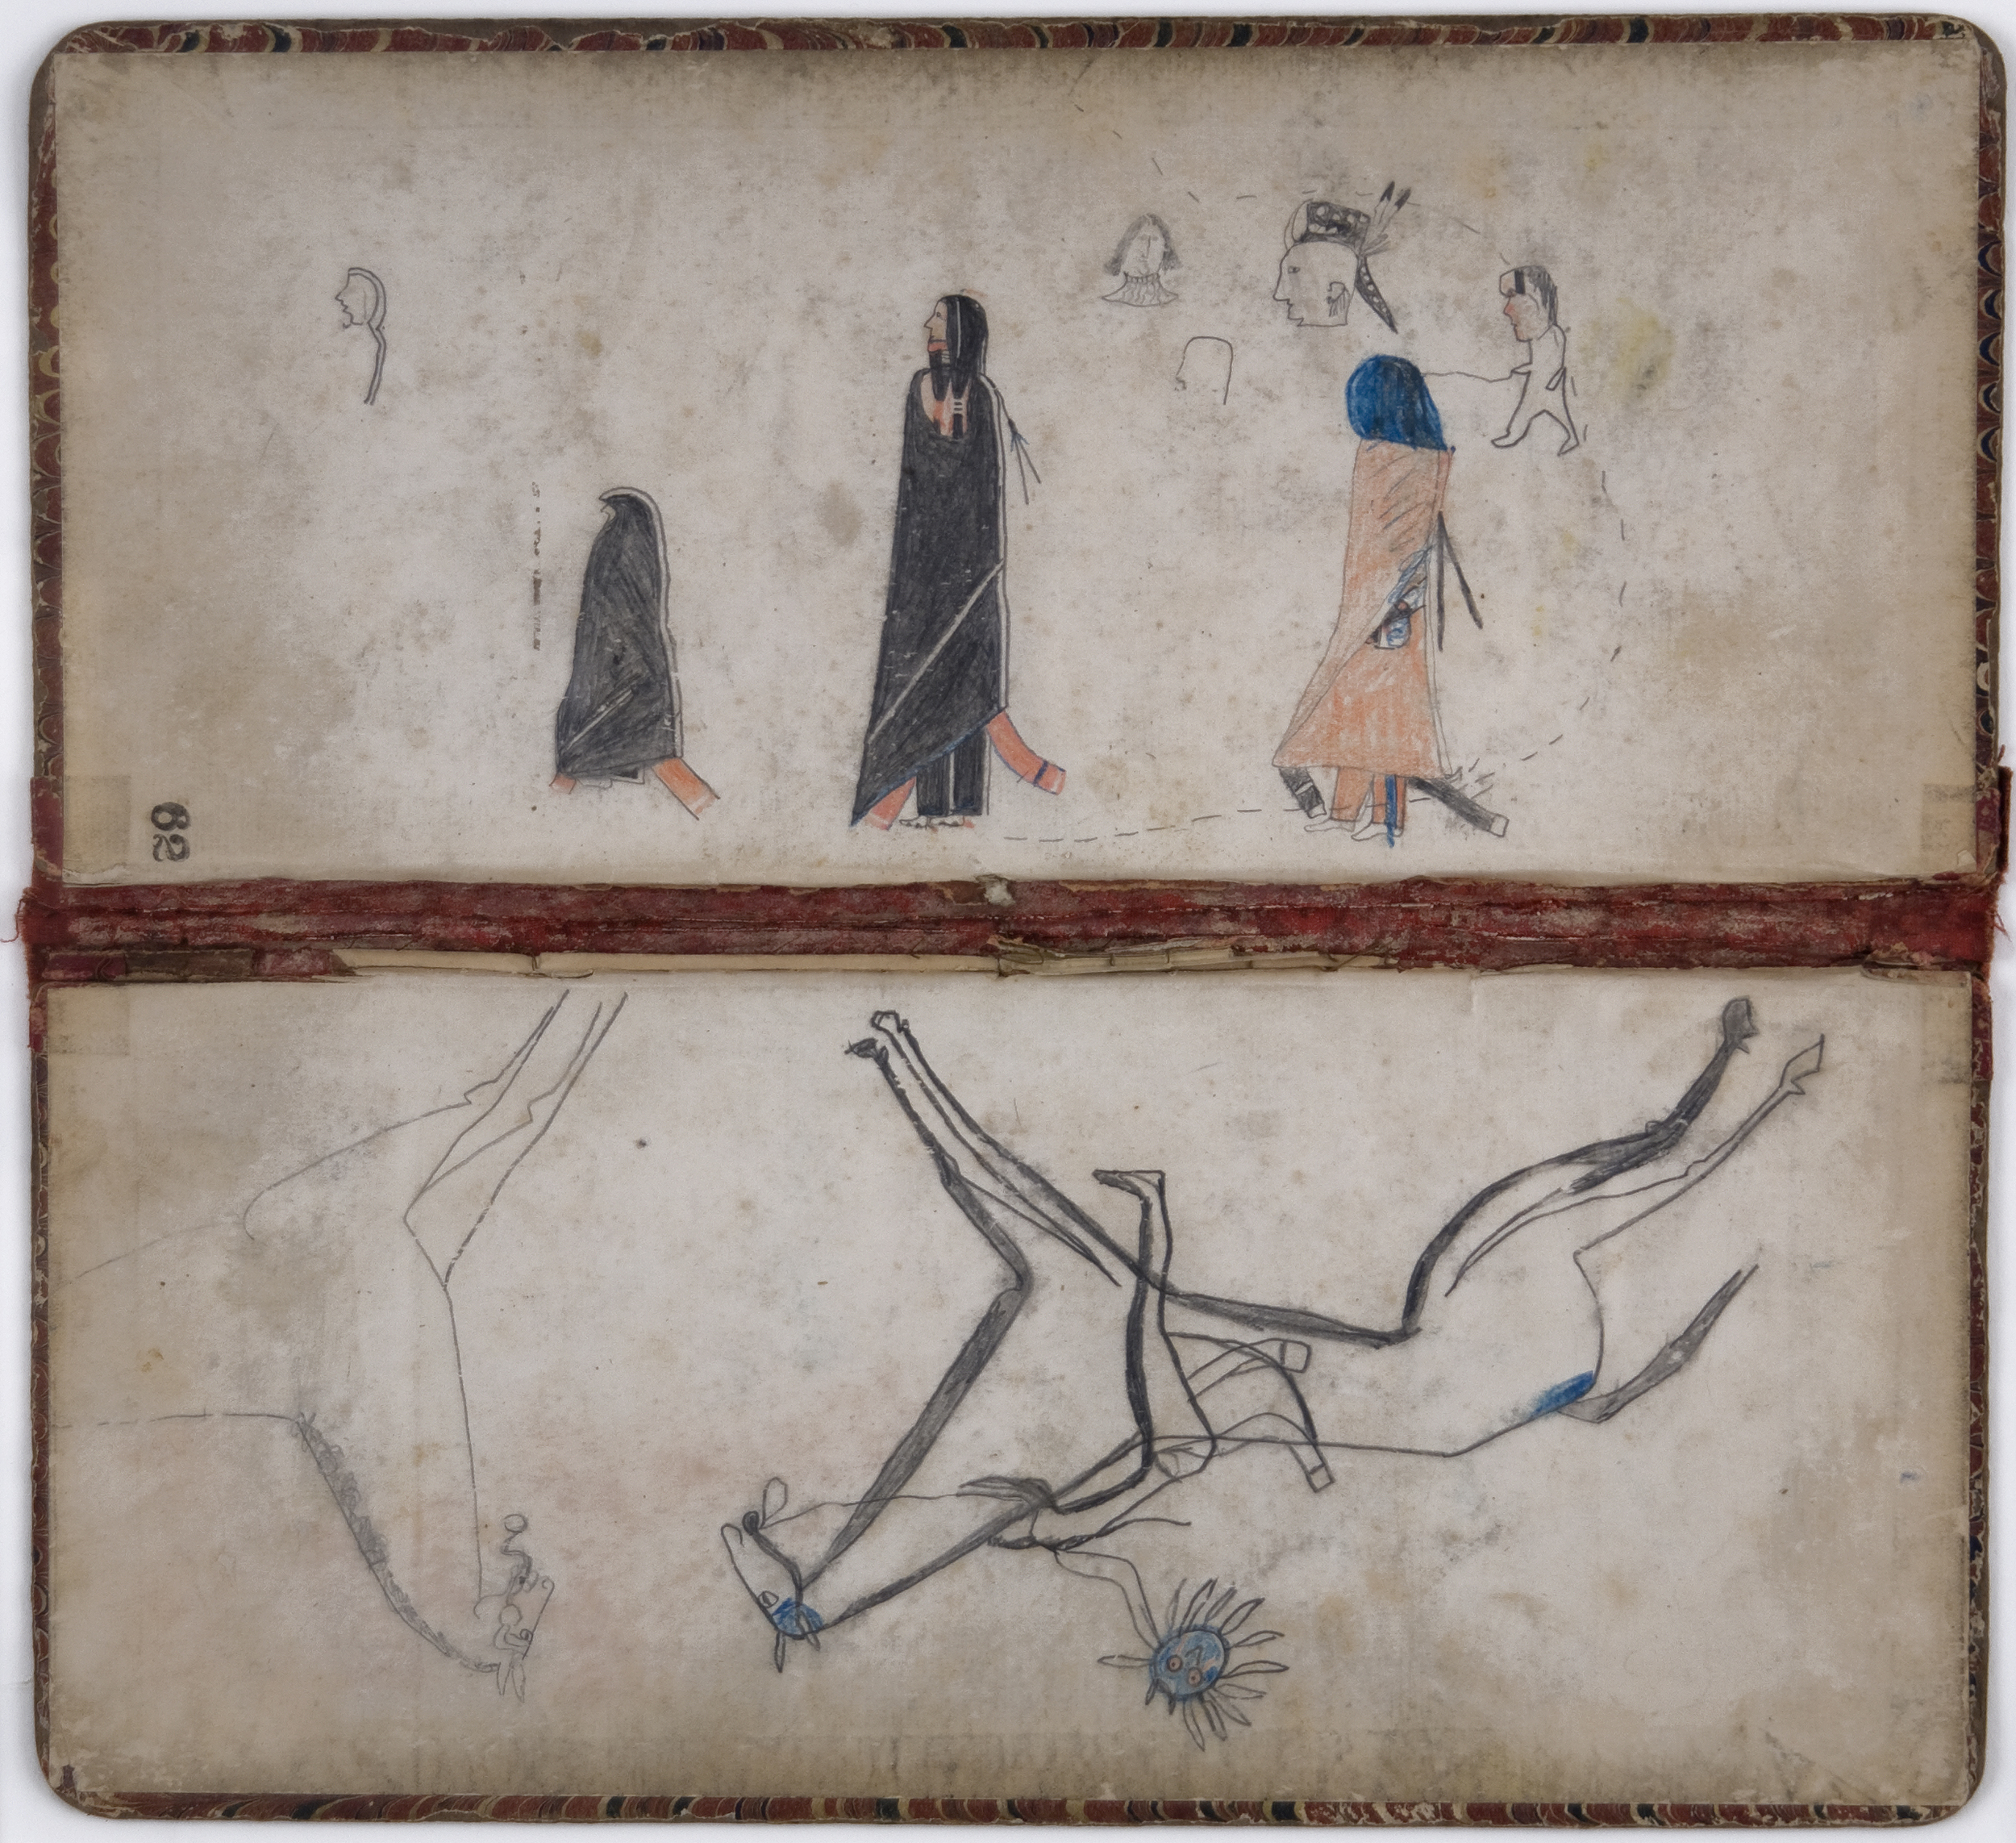 Native American    Ledger Book Ends  , c. 1890's Graphite, colored pencil on ledger binder 11.5 x 12 in / 29.2 x 30.5 cm / NAm 117